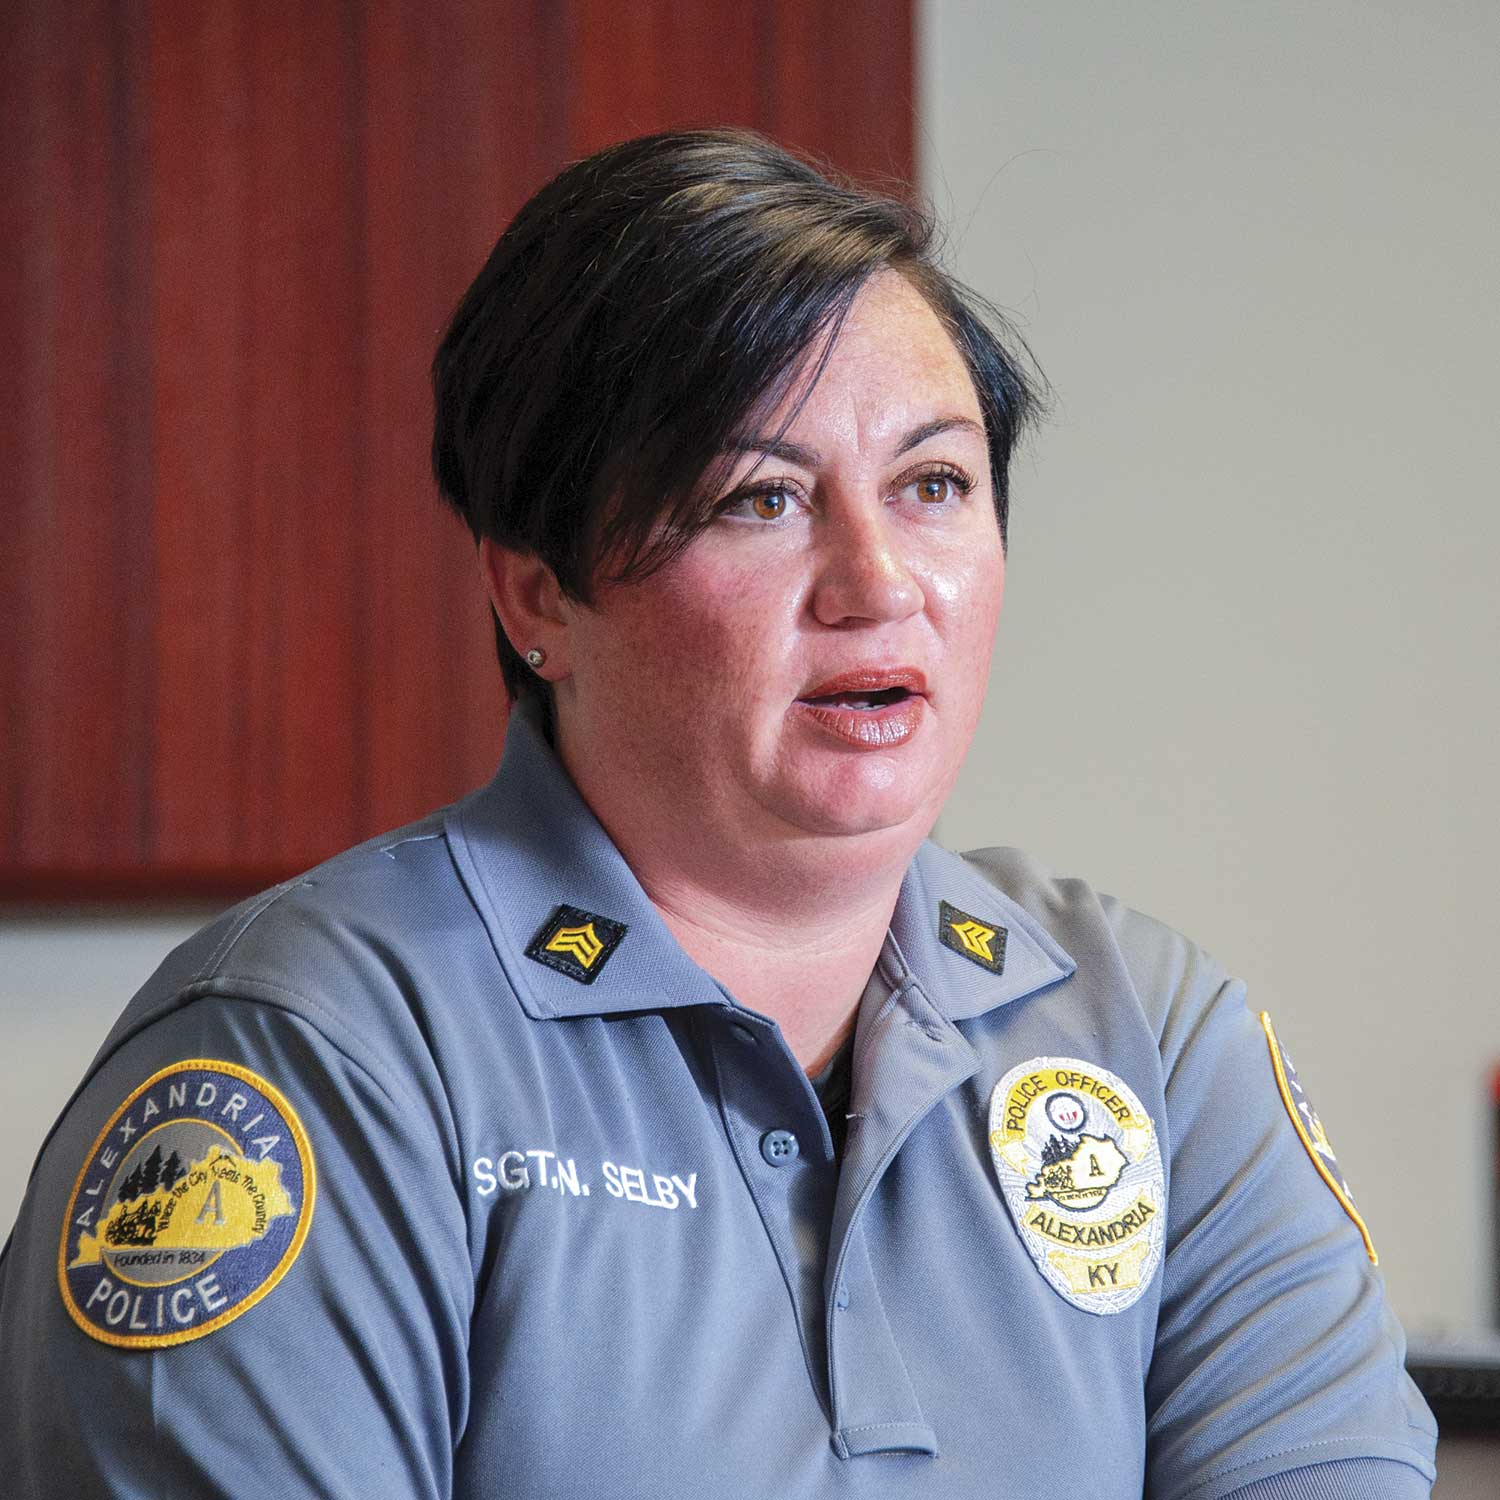 Alexandria Police Sgt. Natalie Selby said the Volunteers in Police Services group attends monthly trainings. The training sessions cover a wide spectrum of topics ranging from crisis intervention to radio procedures. (Photo by Jim Robertson)